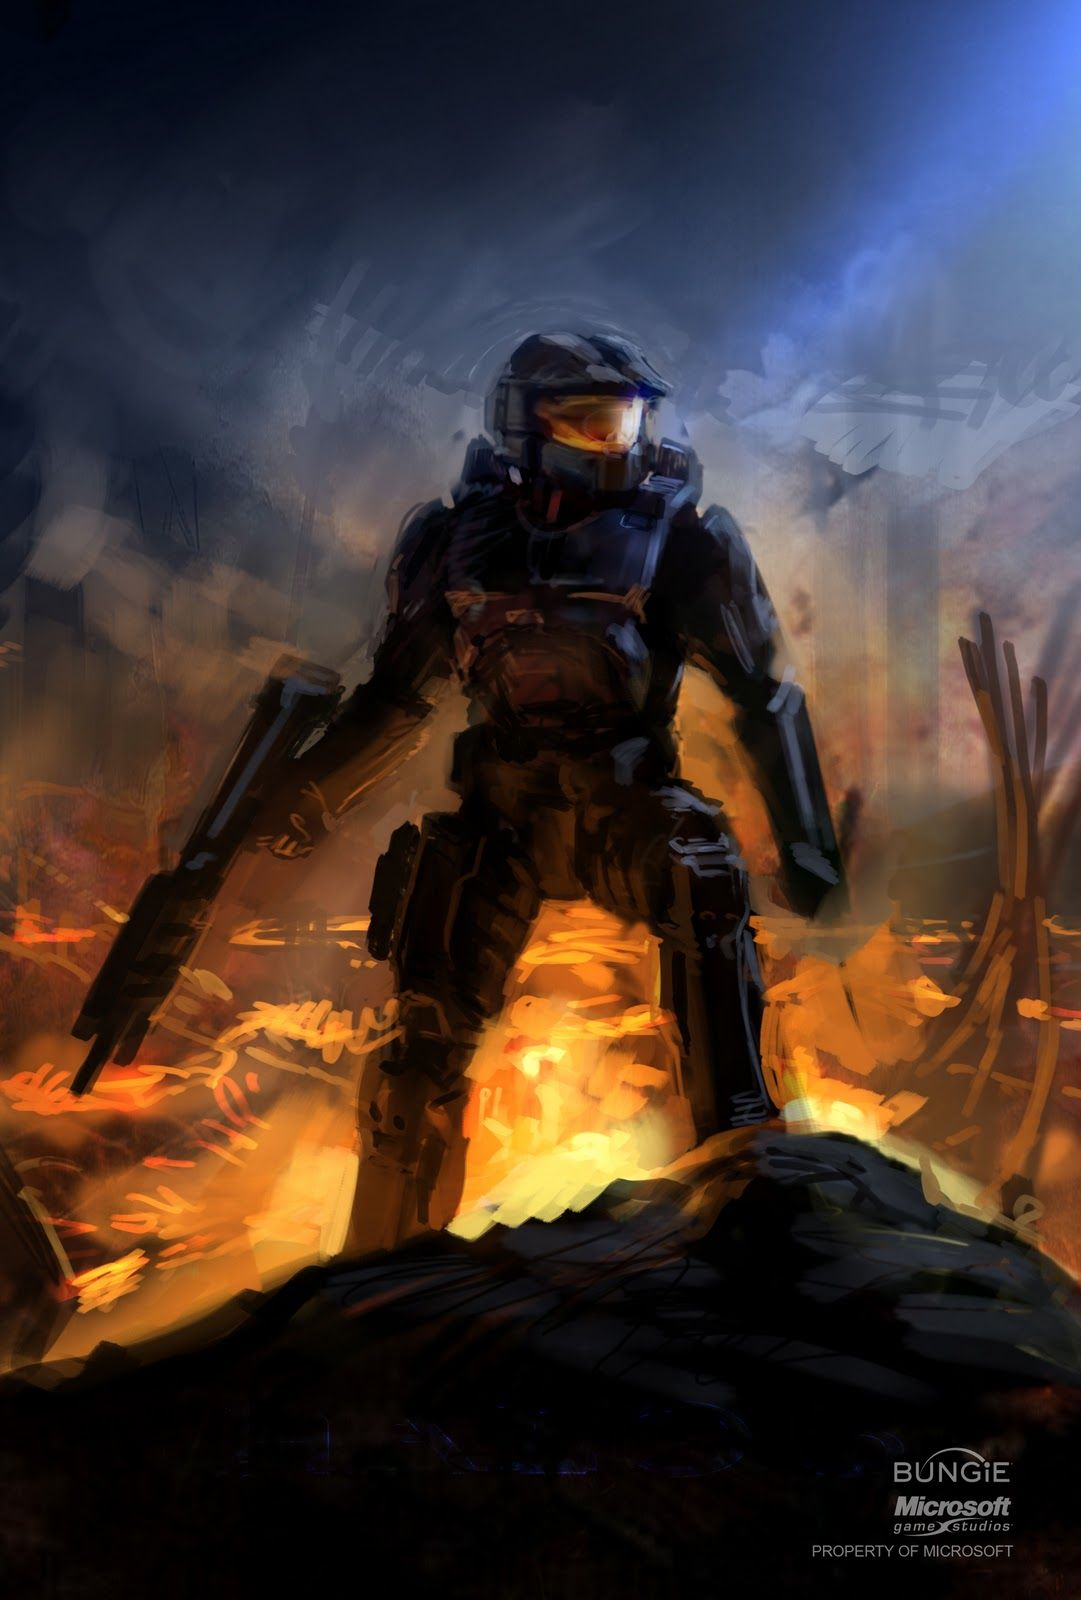 Master chief halo isaac hannaford halo pinterest - Master chief in halo reach ...